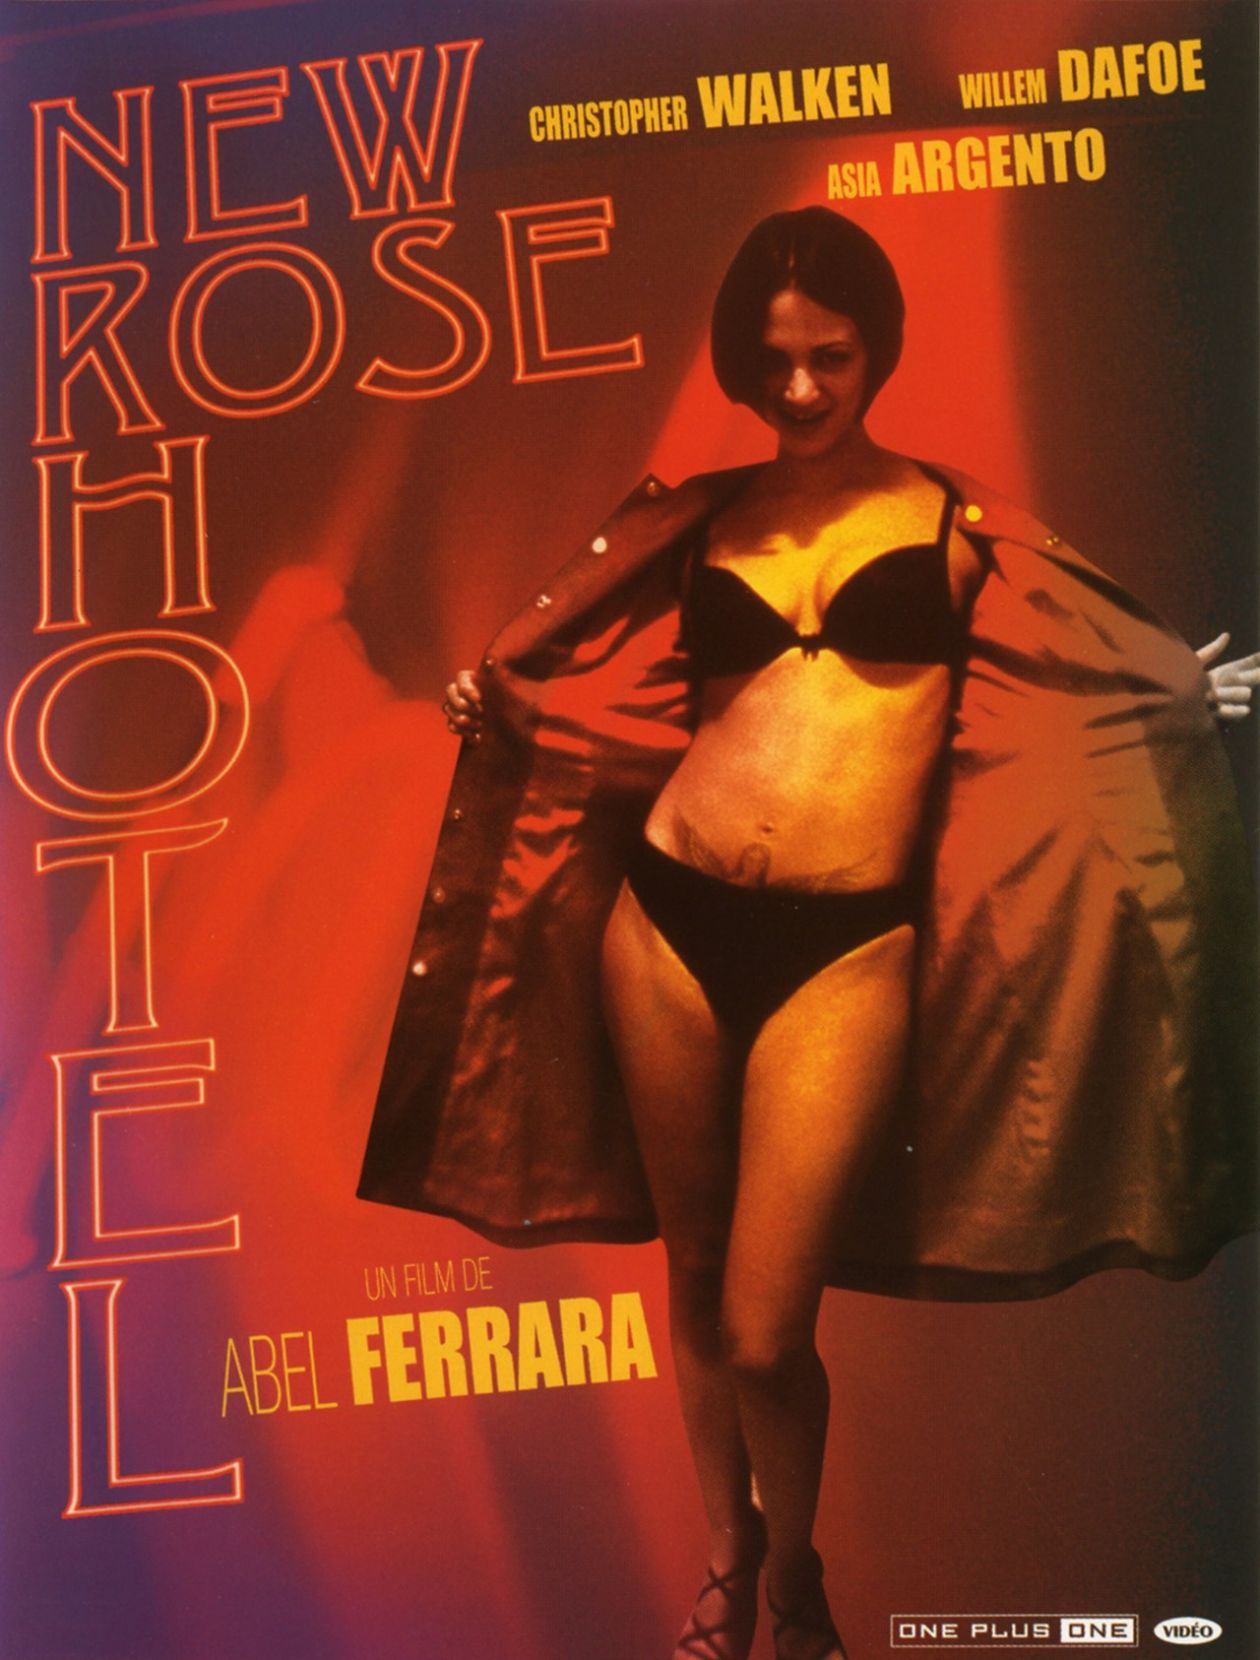 Asia Argento actress | New Rose Hotel | Abel Ferrara 1999 Movie Poster Affiche film